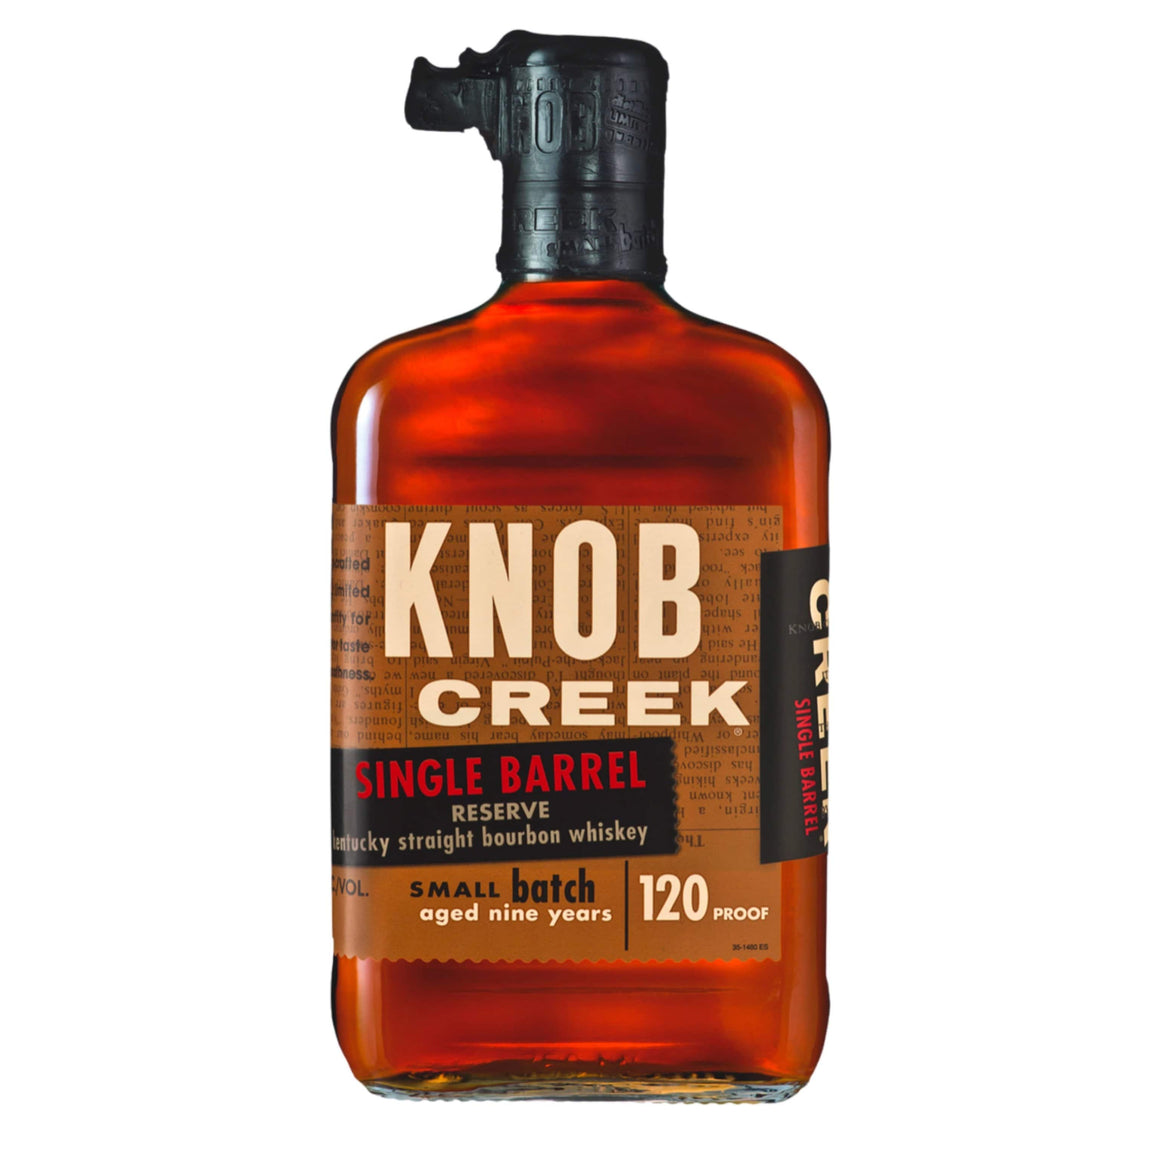 Knob Creek Single Barrel Reserve Small Batch 9 Years 700mL